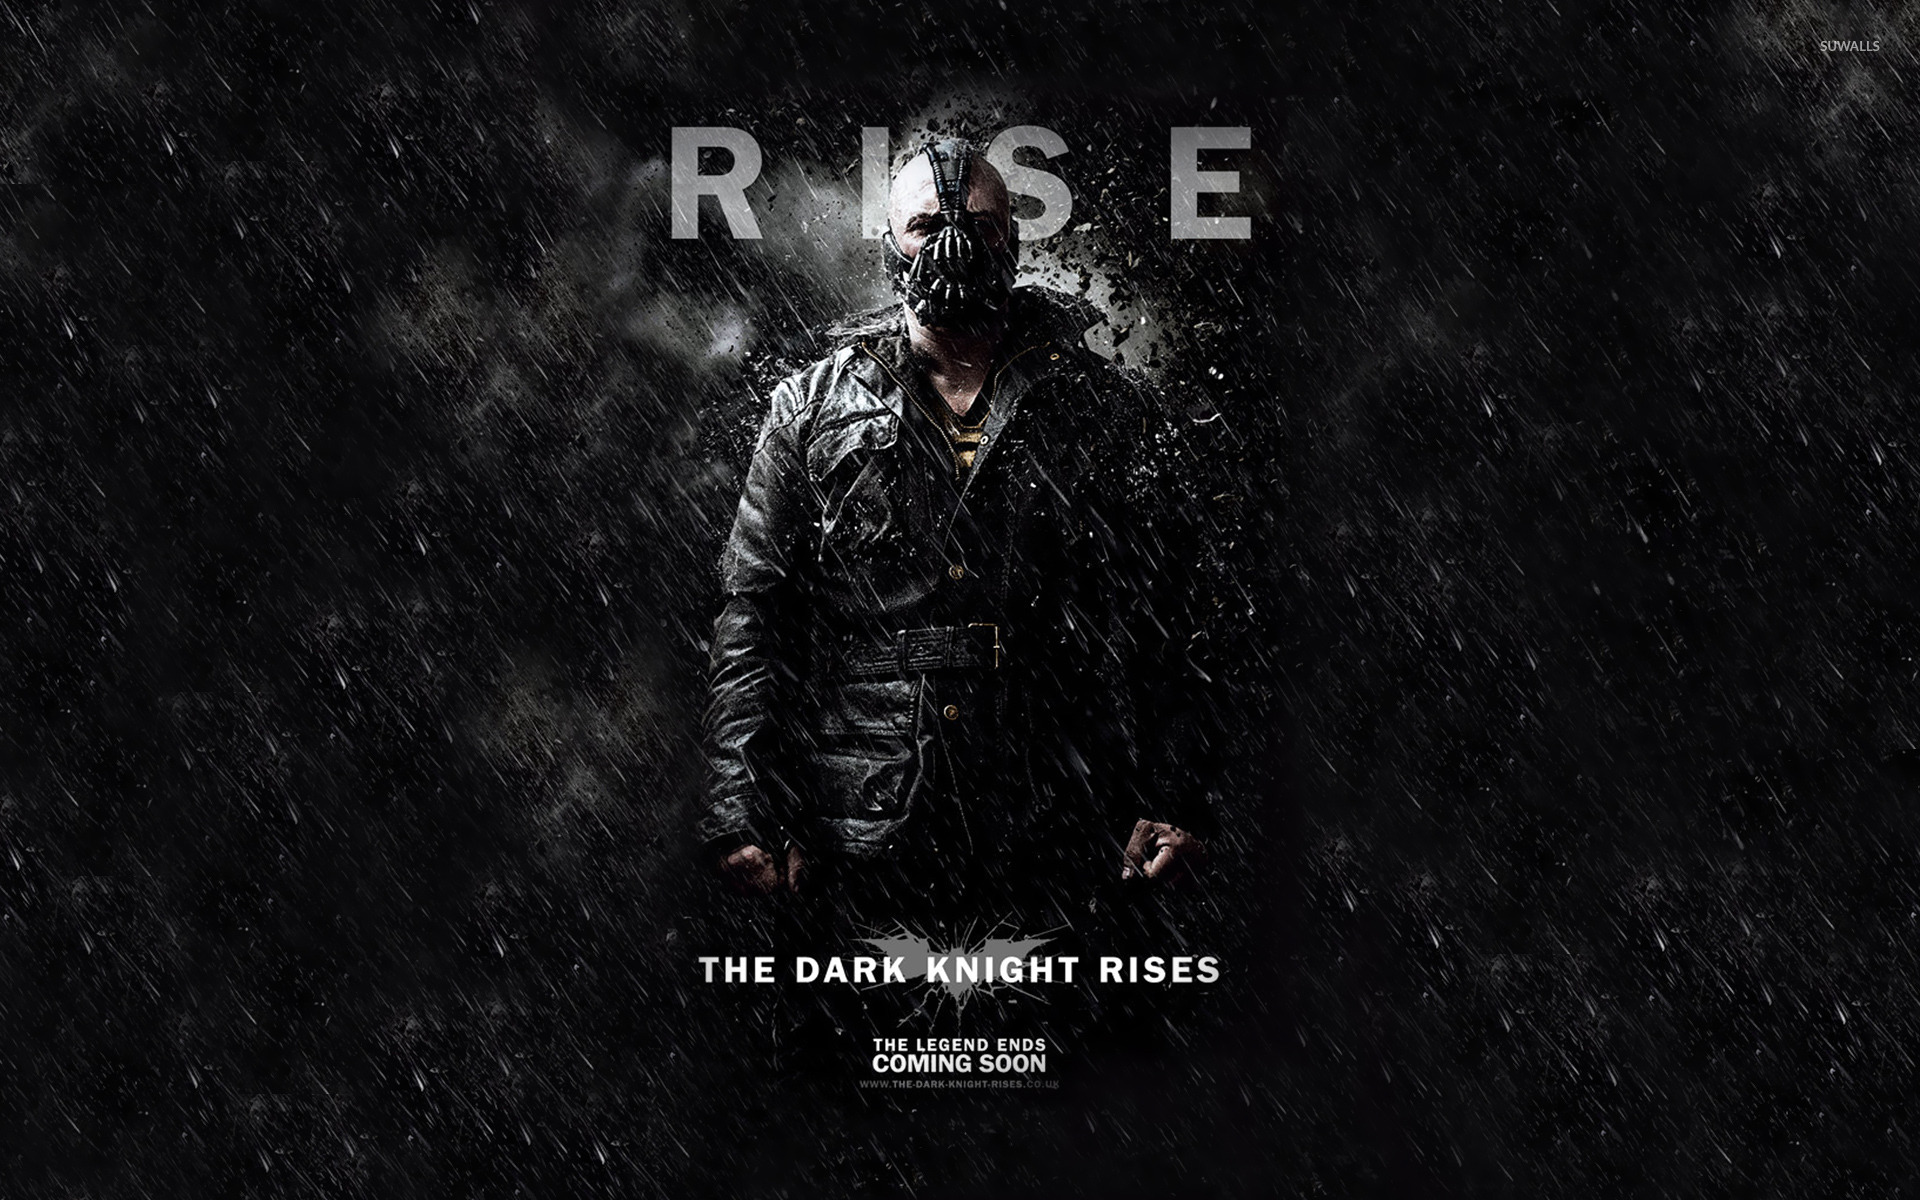 Bane The Dark Knight Rises Wallpaper Movie Wallpapers